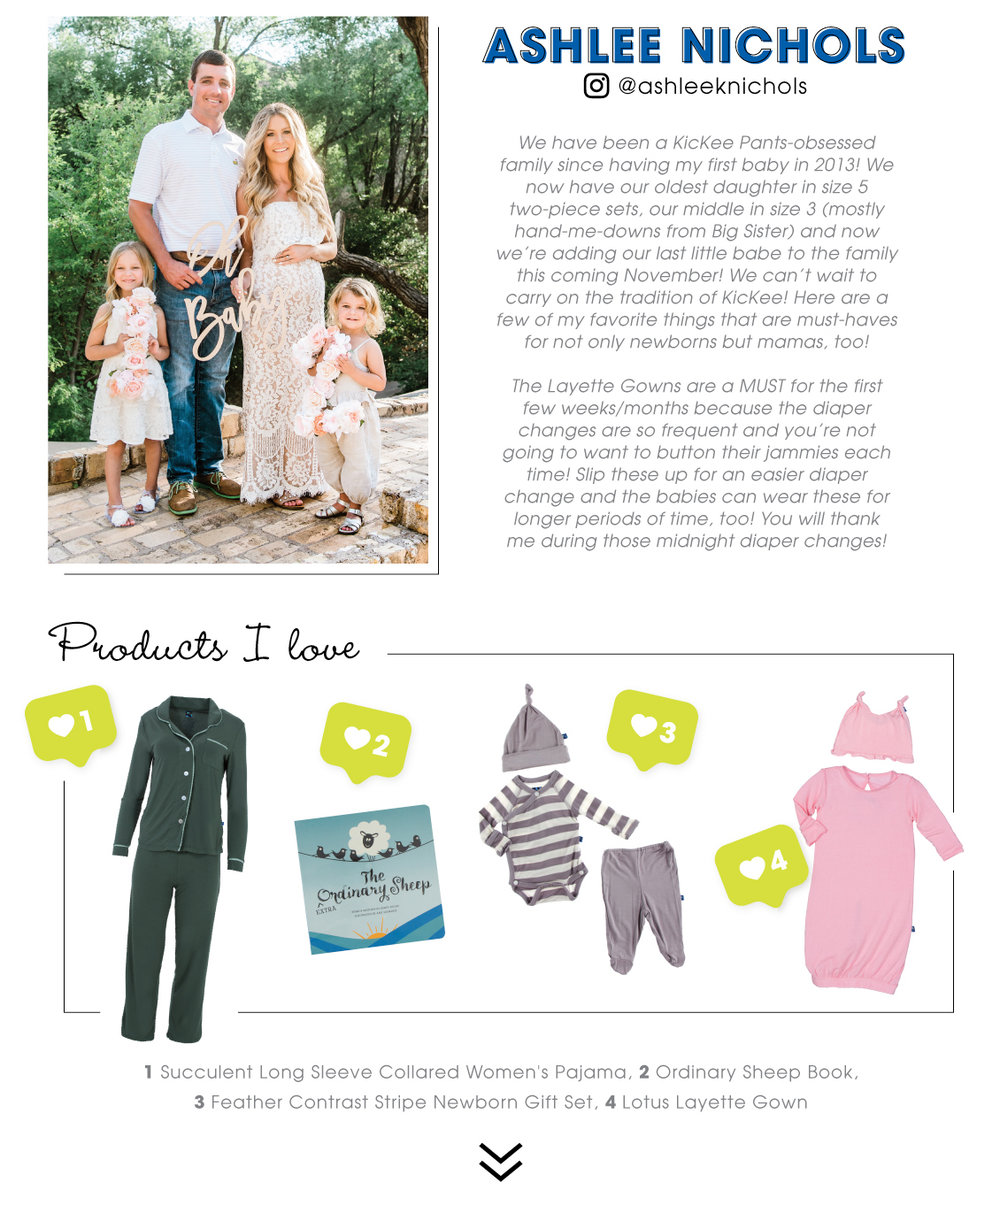 Baby-Registry-Giveaway-Campaign_Blog_02.jpg